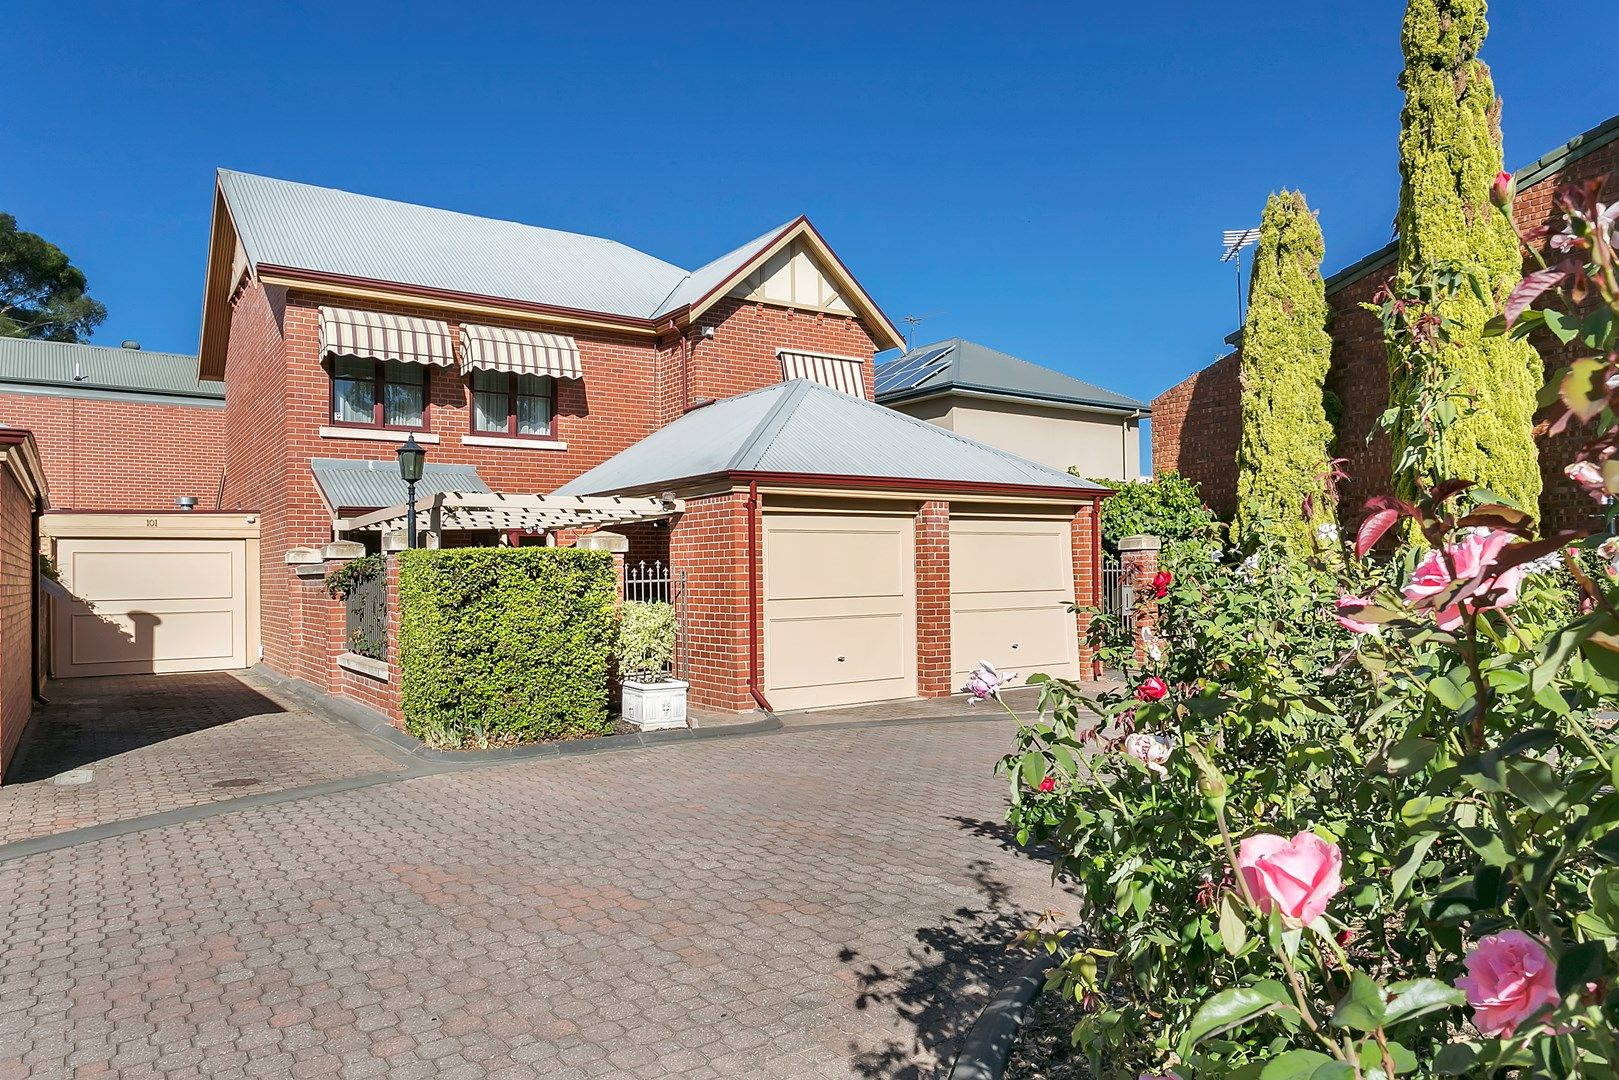 1/107 Barton Terrace West, North Adelaide SA 5006, Image 0